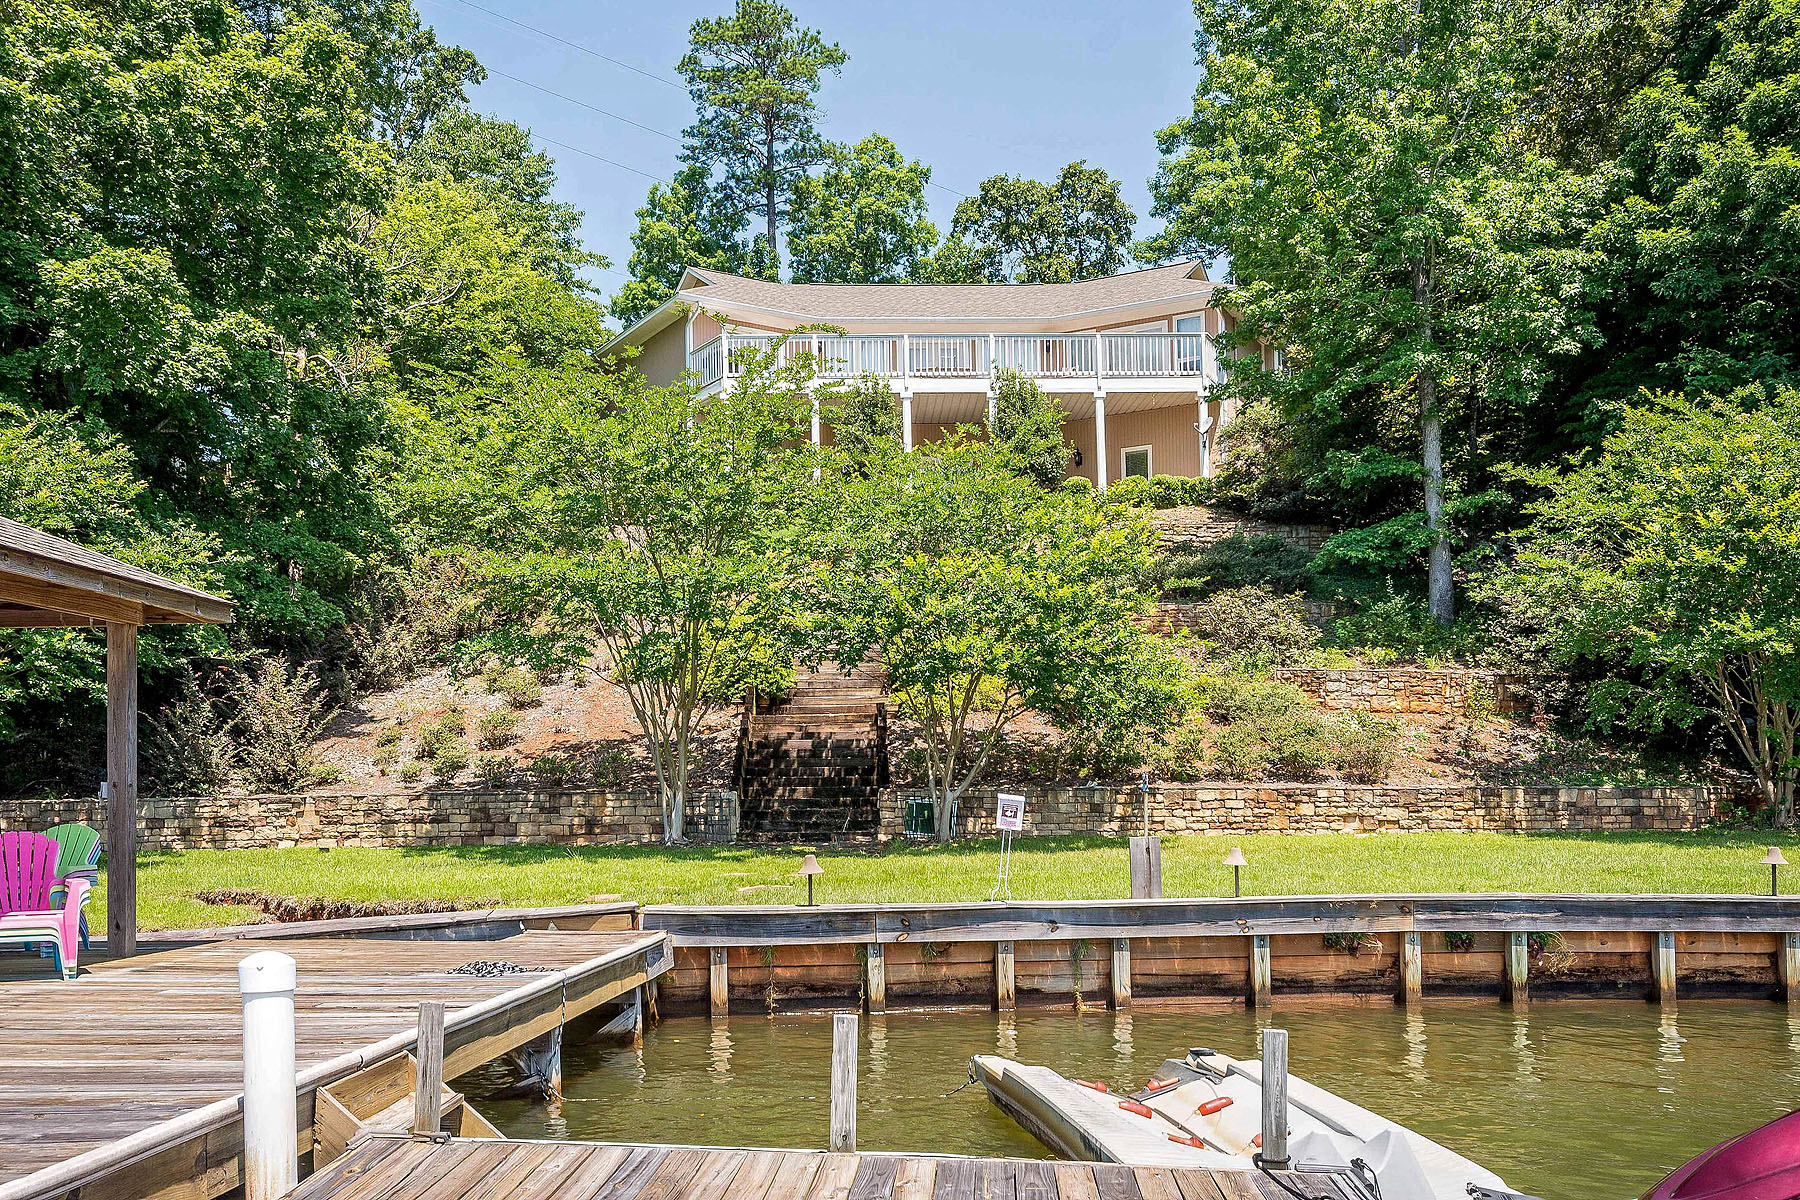 Lakeside at 231 Lakeview Ridge Circle in StillWaters, Lake Martin ...